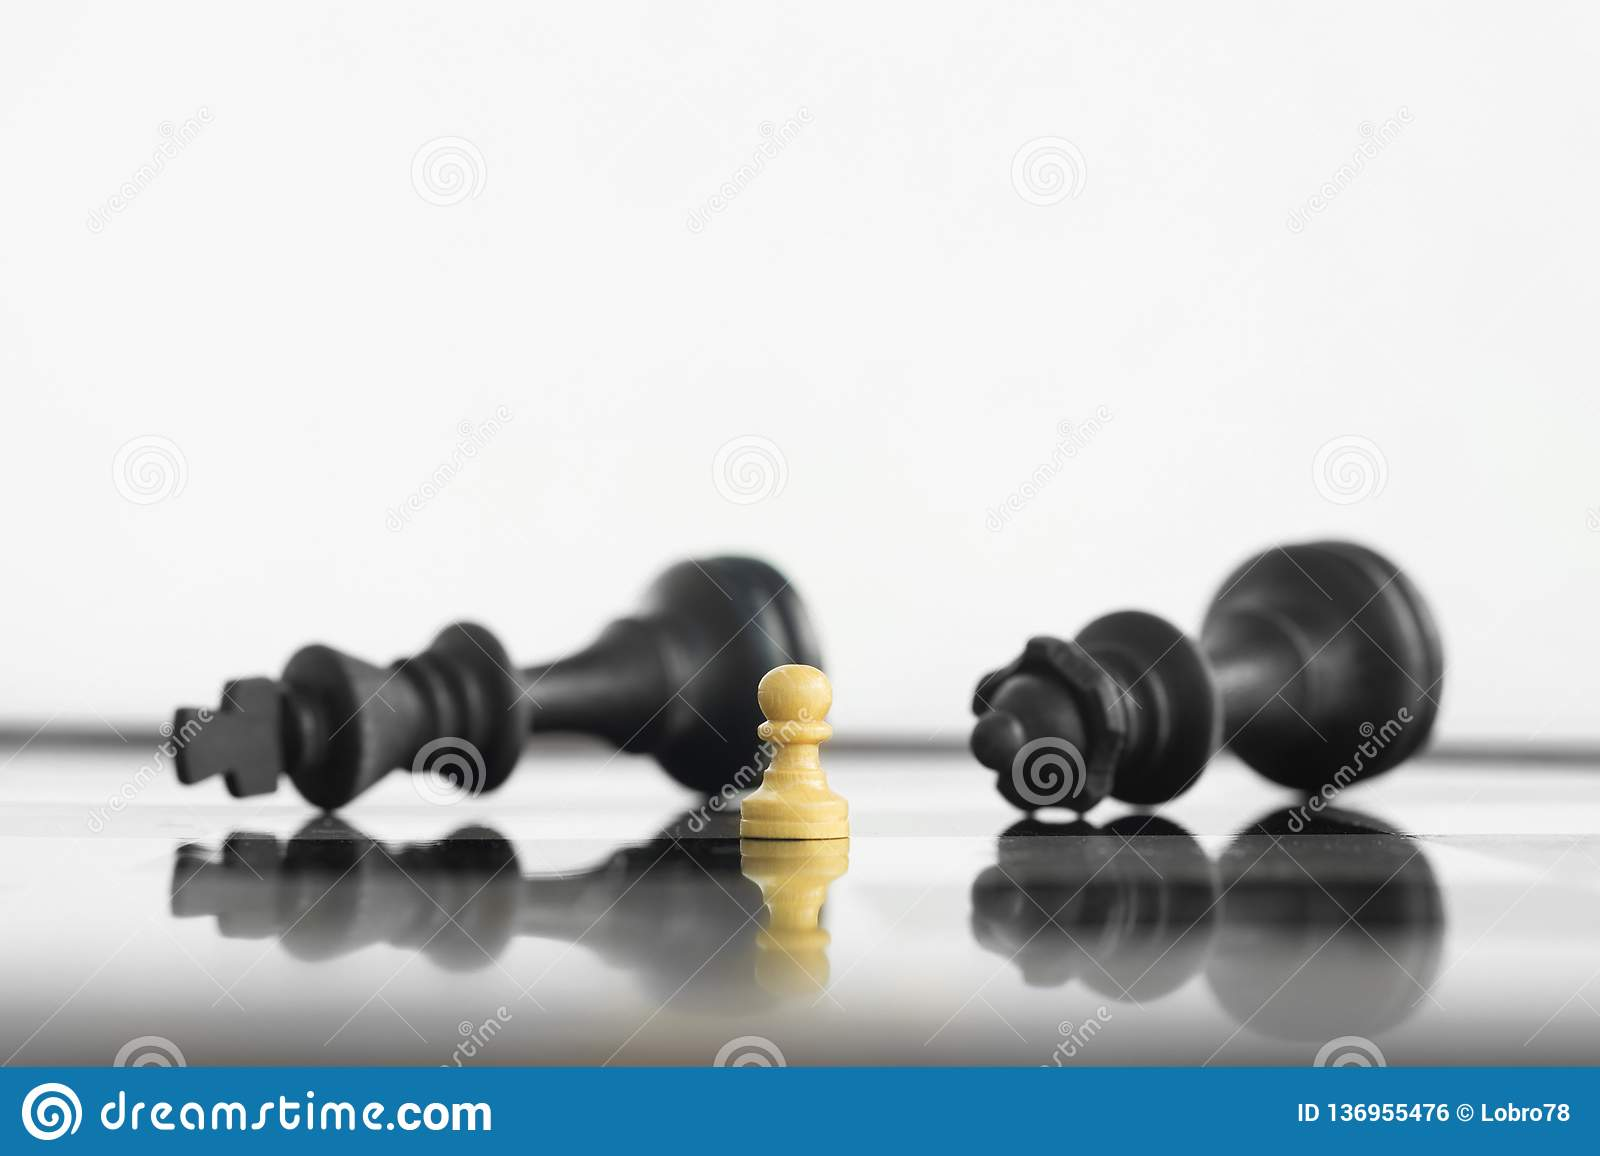 White peon standing victorious in front of a defeated King and Queen black chess army after confrontation